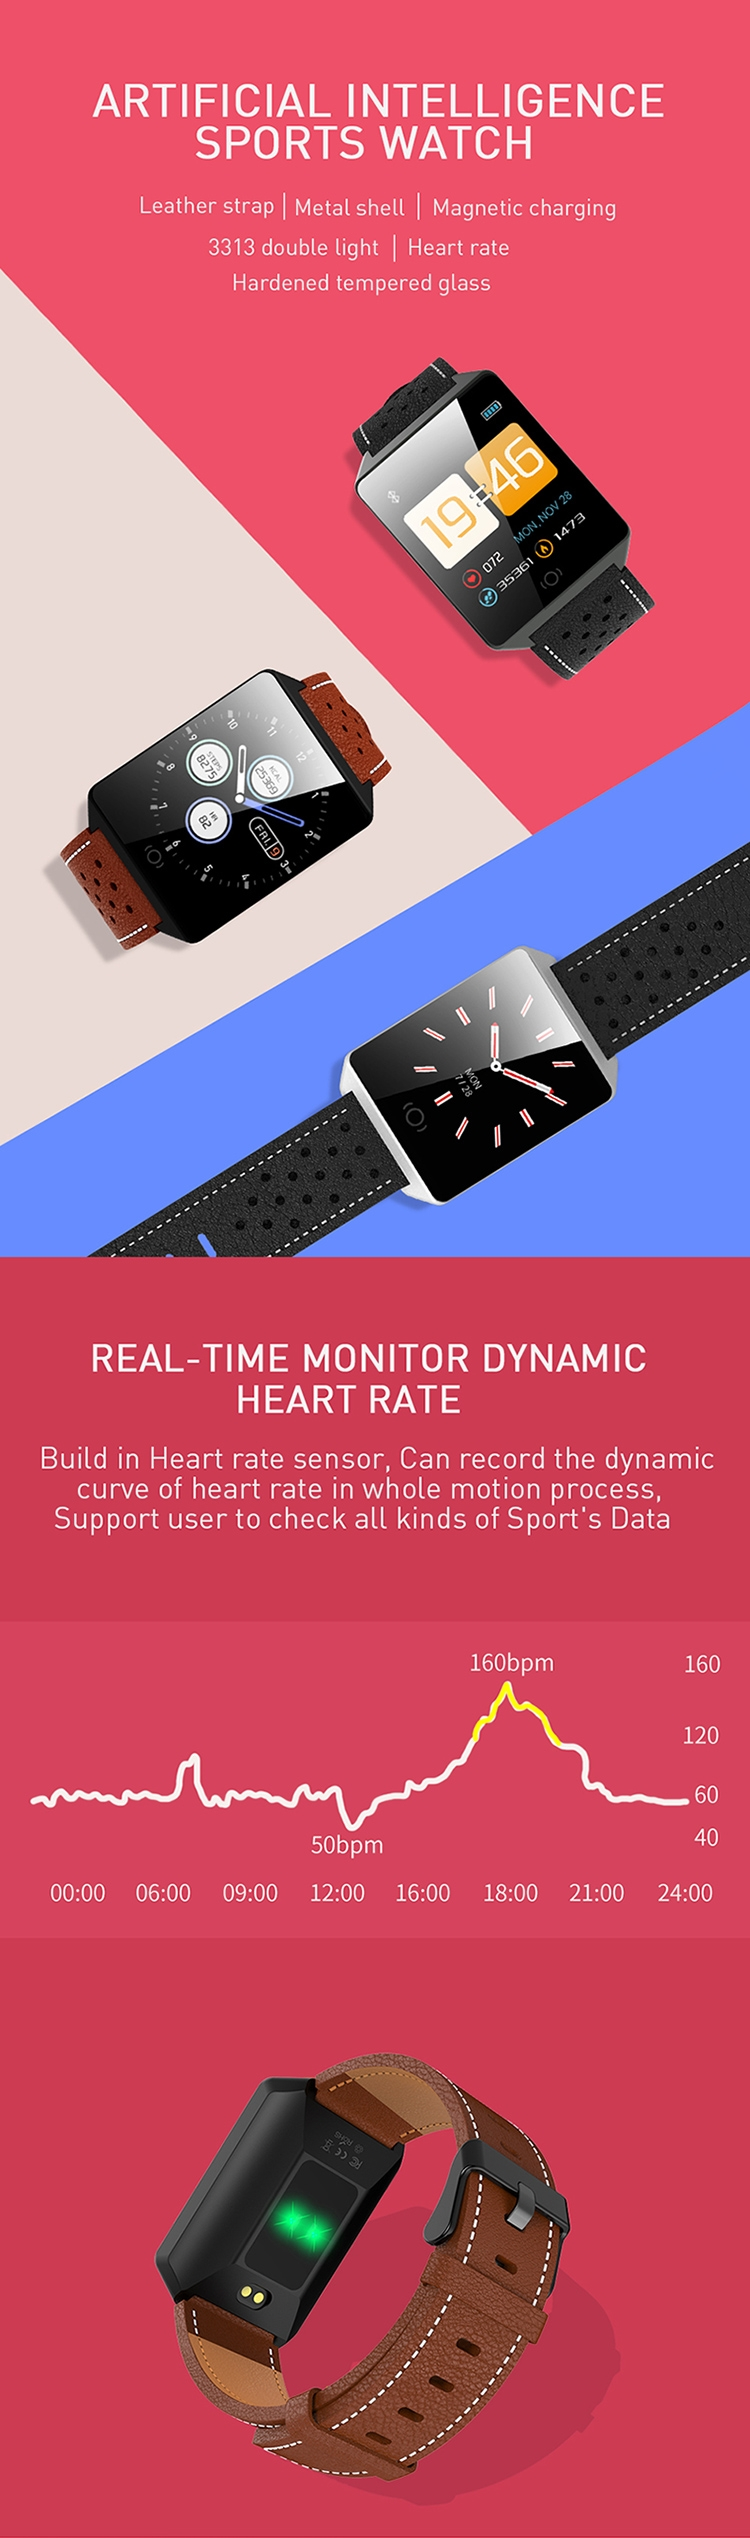 Wholesale Bluetooth Sport Smart Watch Hardened Tempered Glass Mirror Smart Watch 2020 Hand Watch Mobile Phone